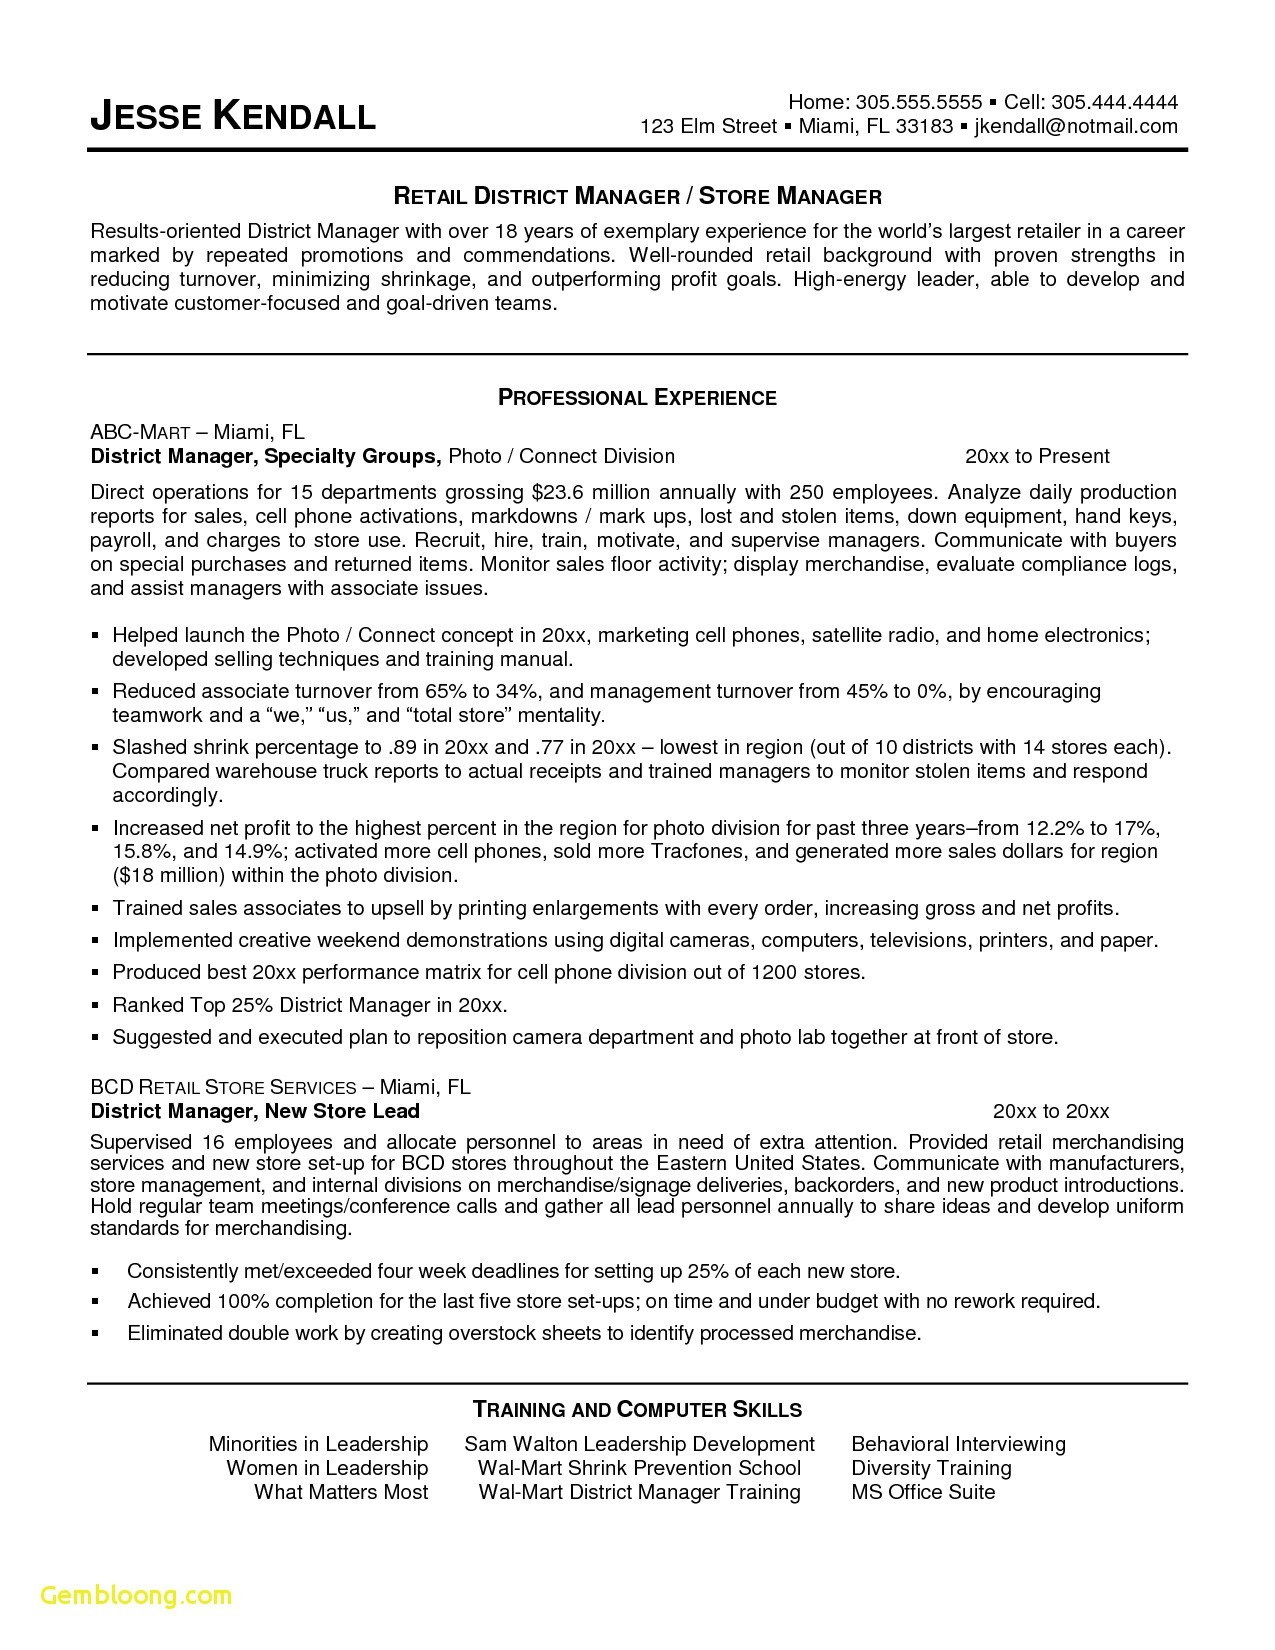 purchasing manager resume template Collection-Purchasing Manager Resume Beautiful Fresh Grapher Resume Sample Beautiful Resume Quotes 0d Bar Manager Purchasing 2-i